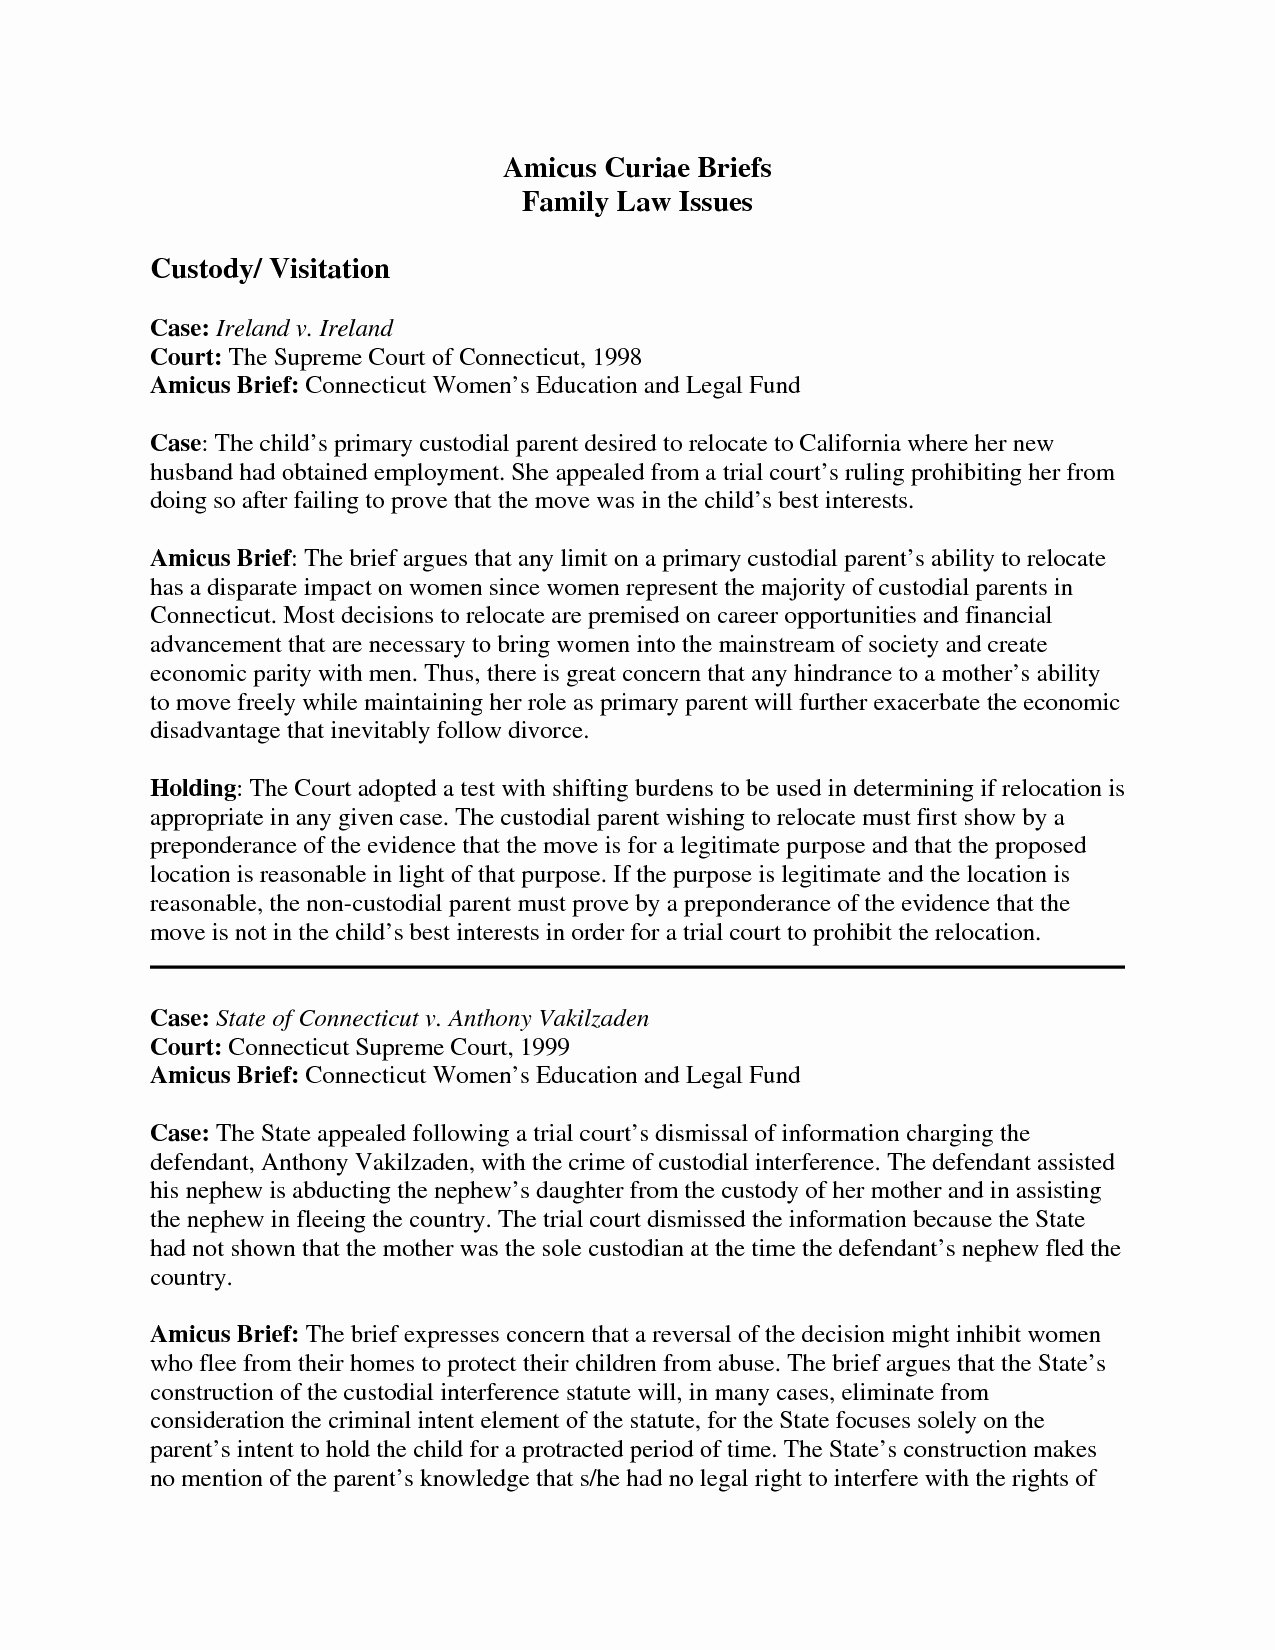 Law School Case Brief Template Awesome Case Brief Template